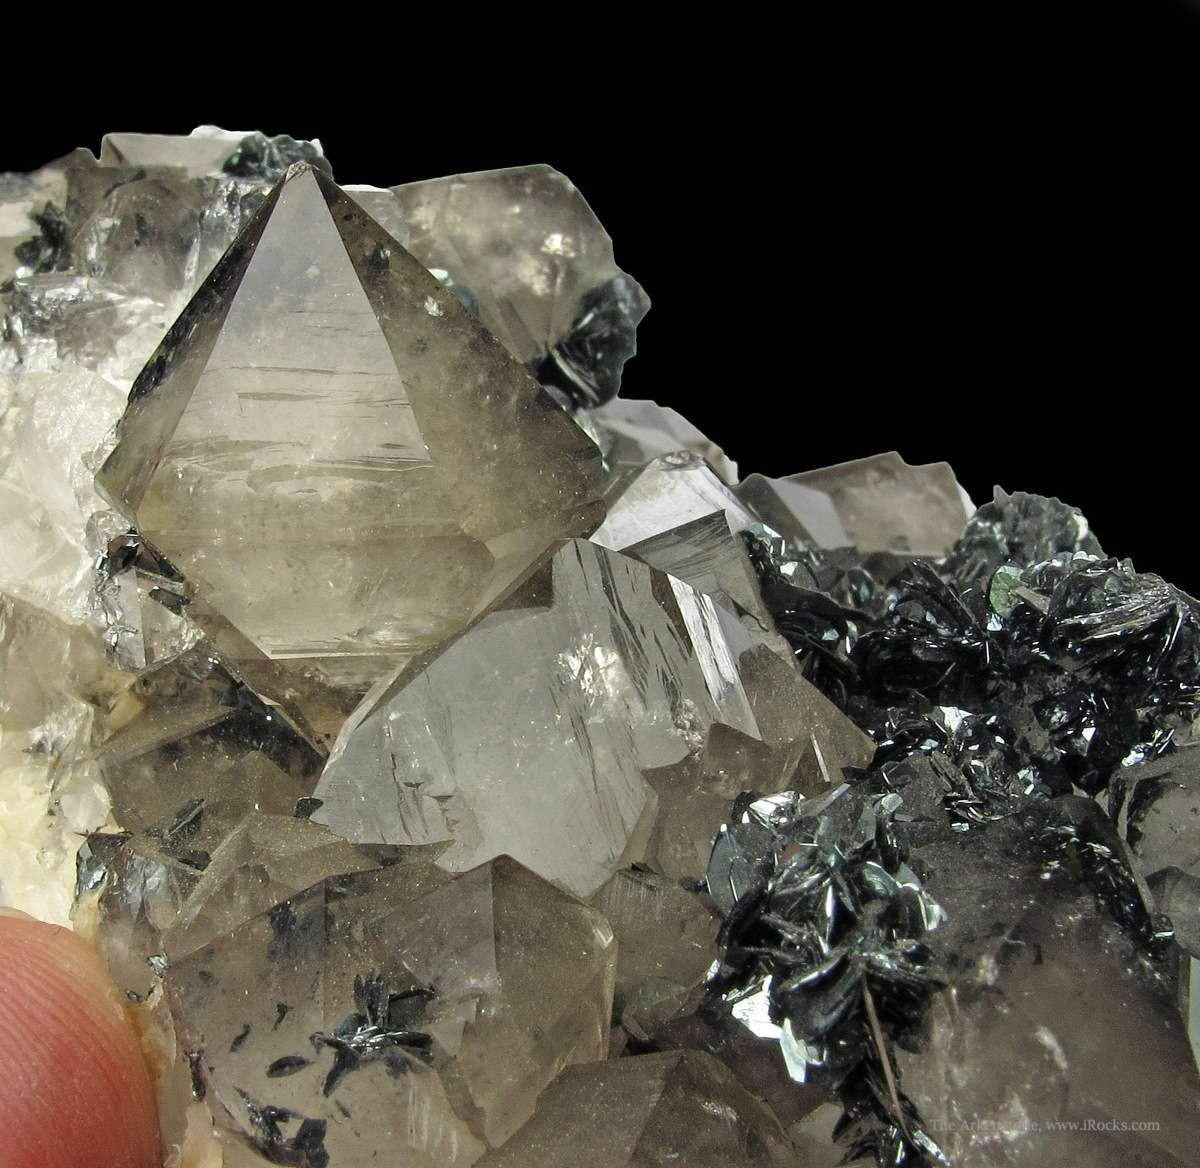 Very glassy lustrous Smoky Beta Quartz crystals 2 cm dominate choice